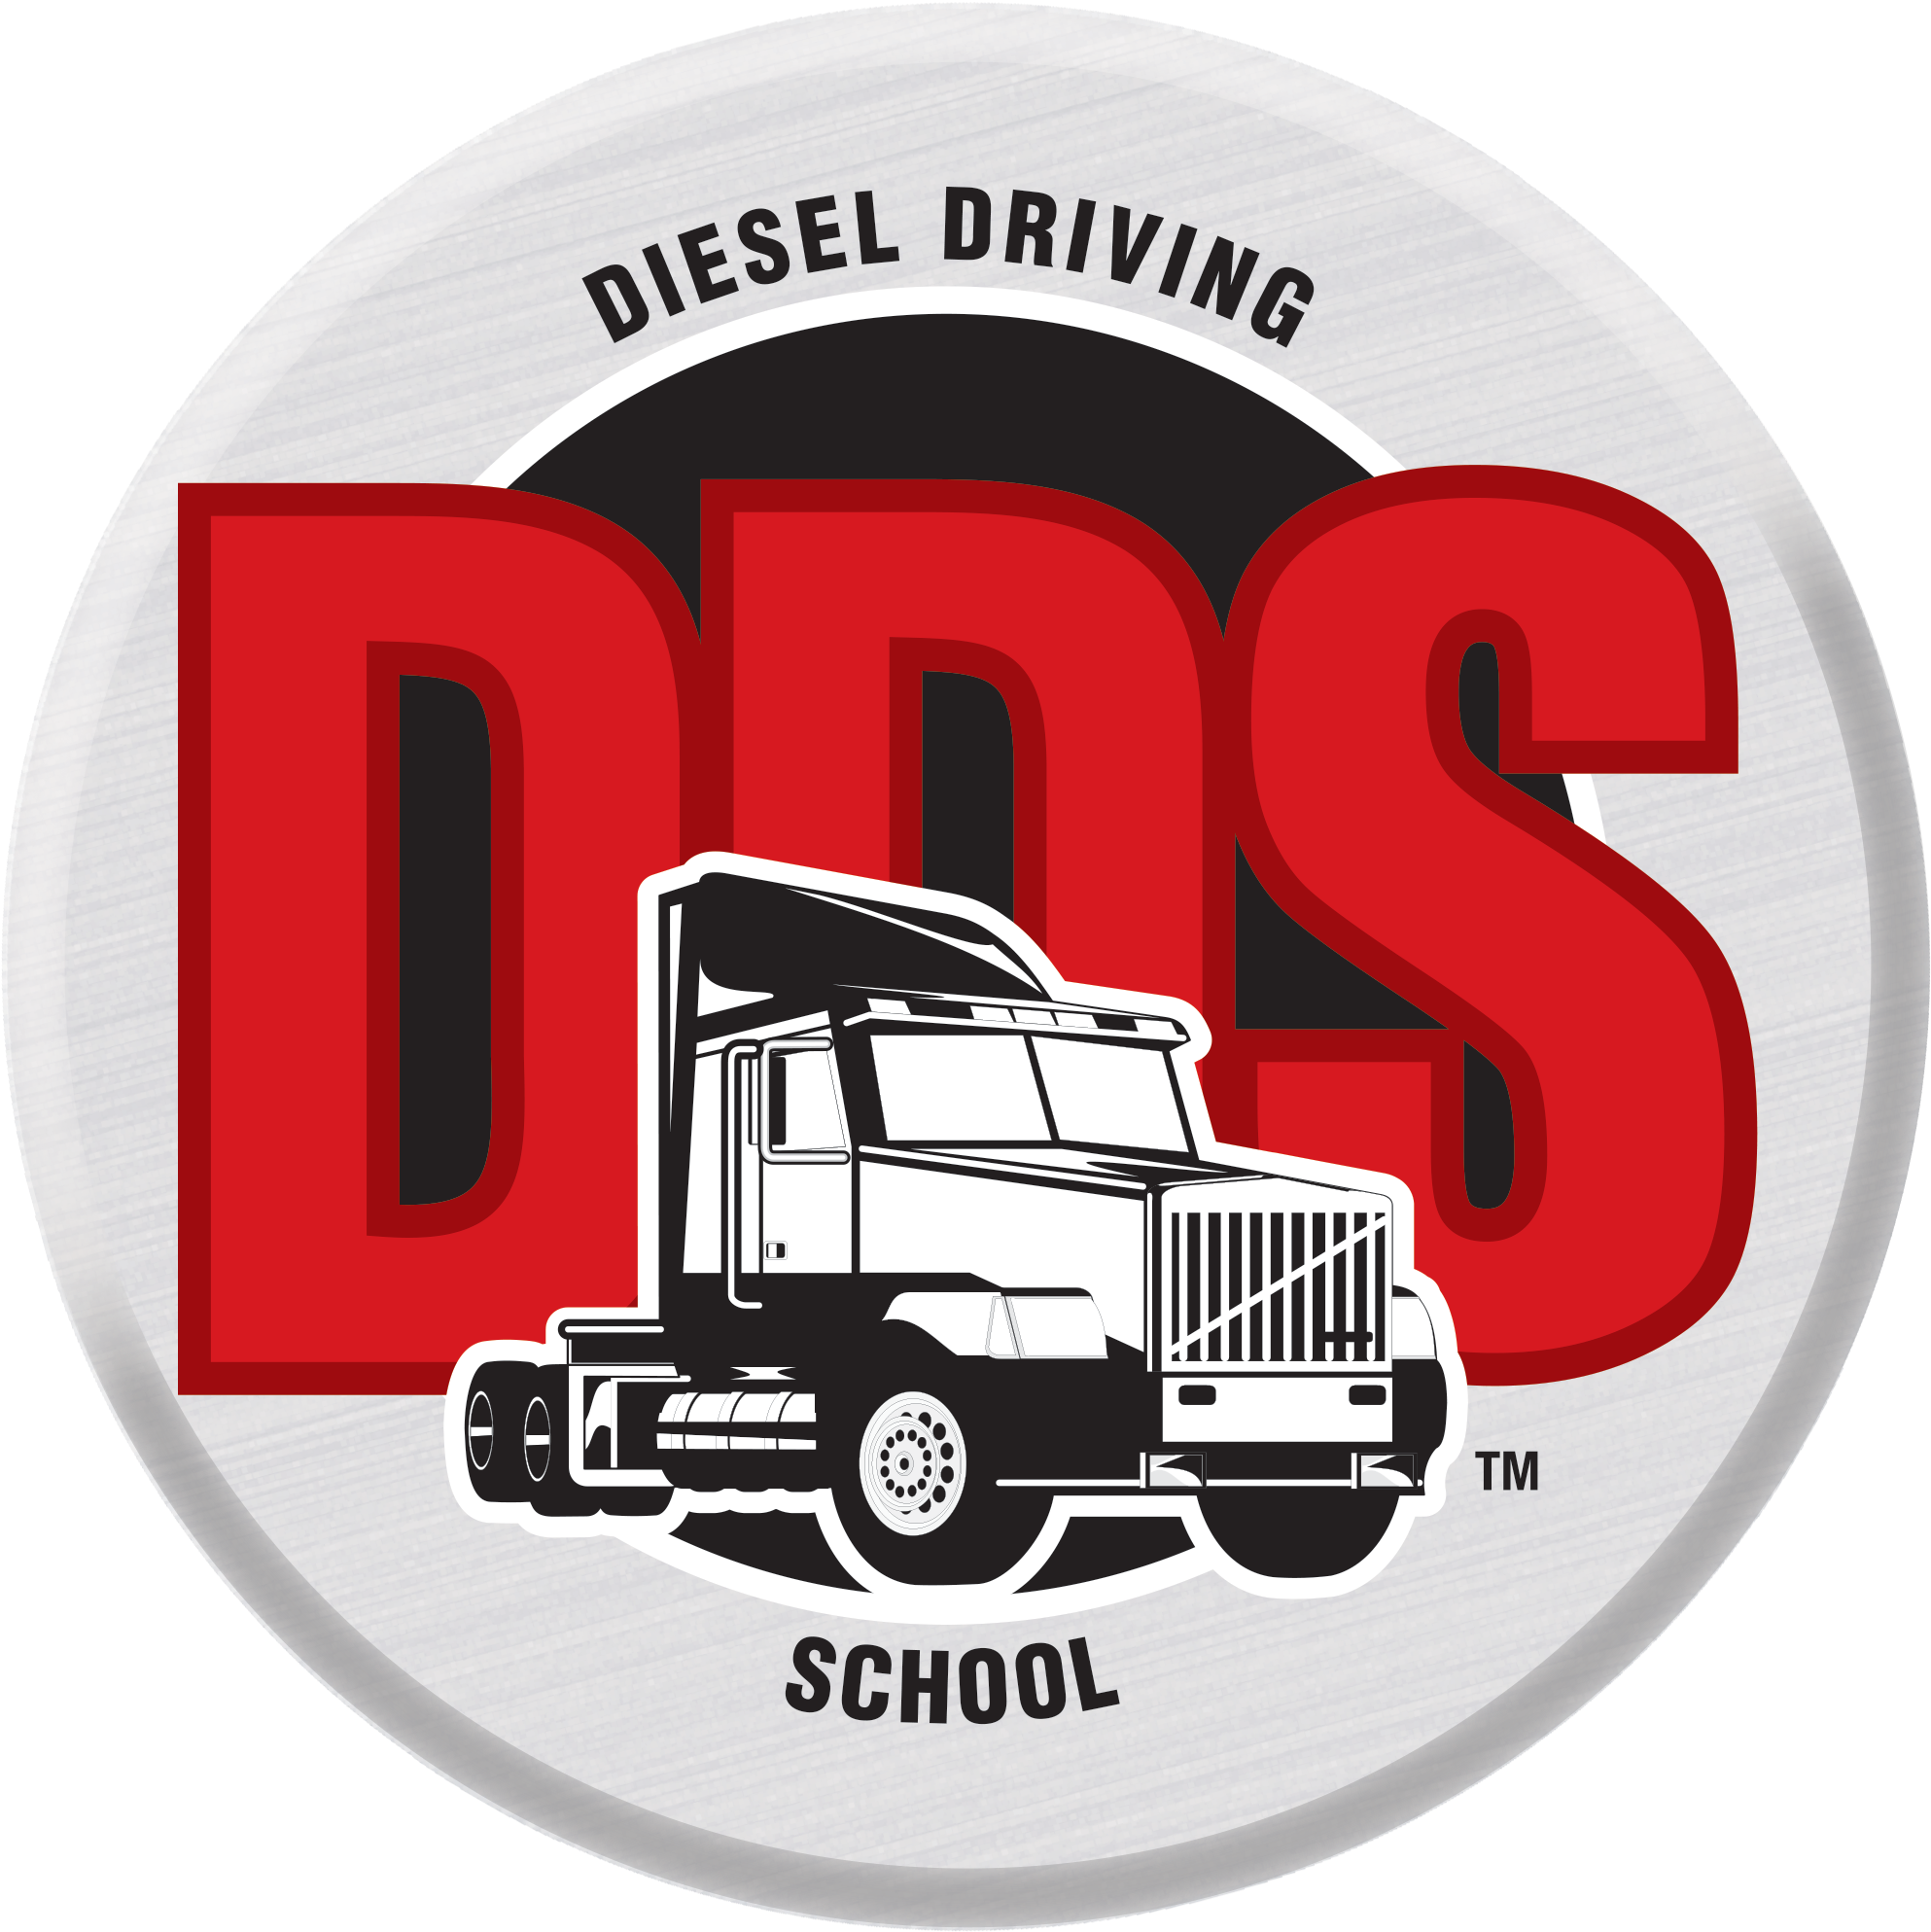 Hd trailer logo clipart image download HD Diesel Driving School Diesel Driving School - Trailer Truck ... image download